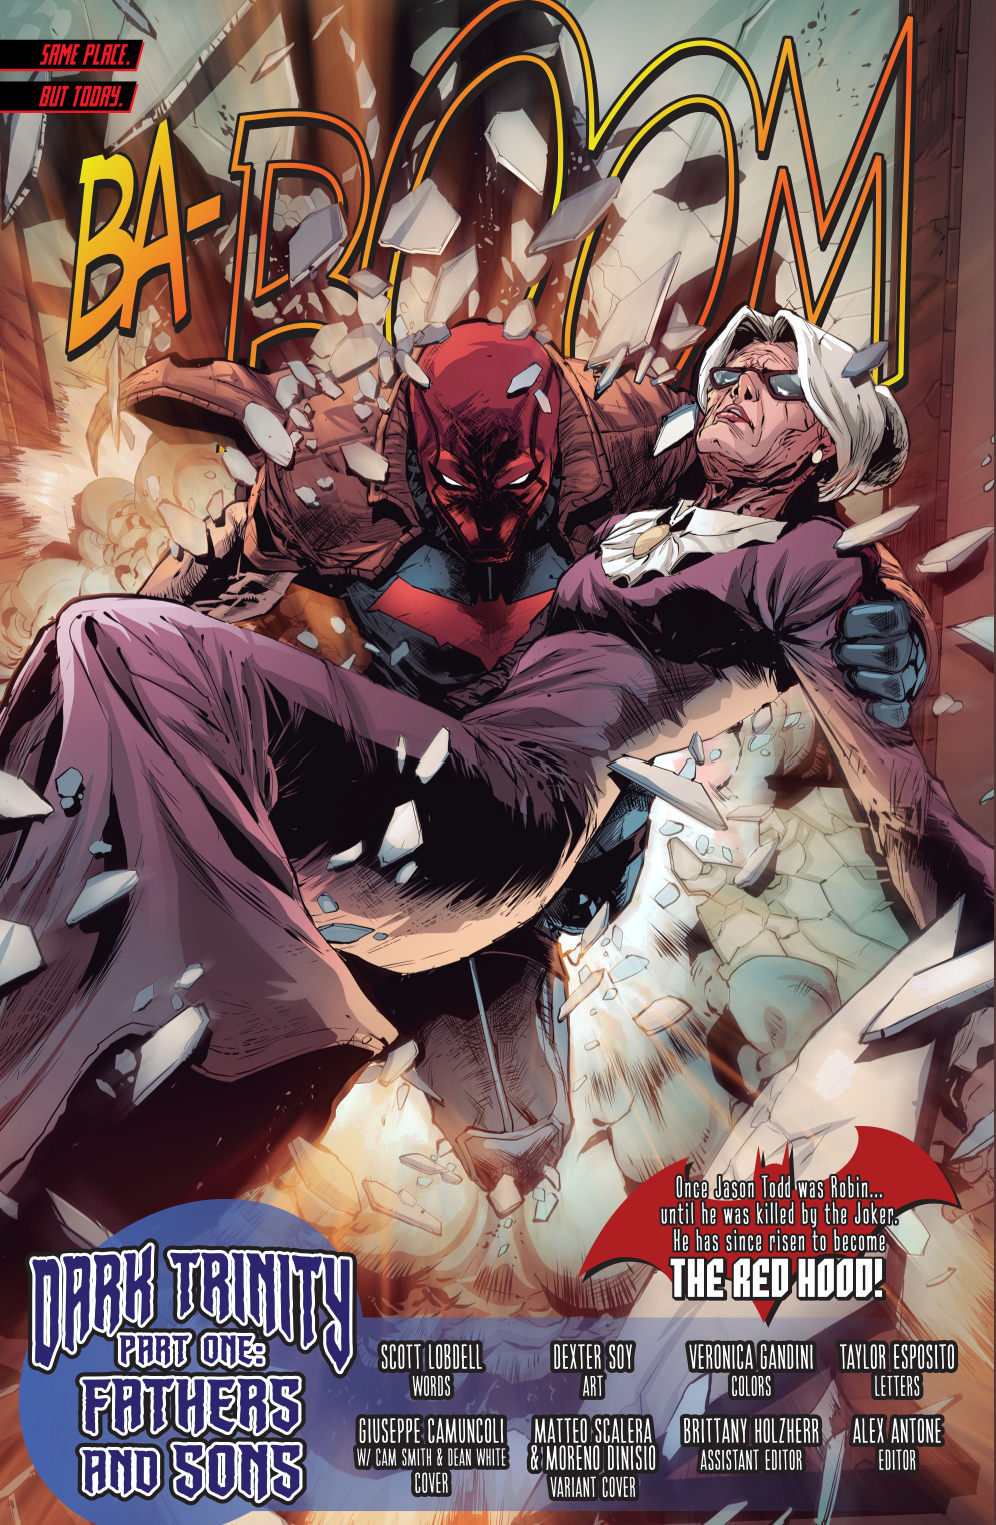 red-hood-red-hood-and-the-outlaws-vol-2